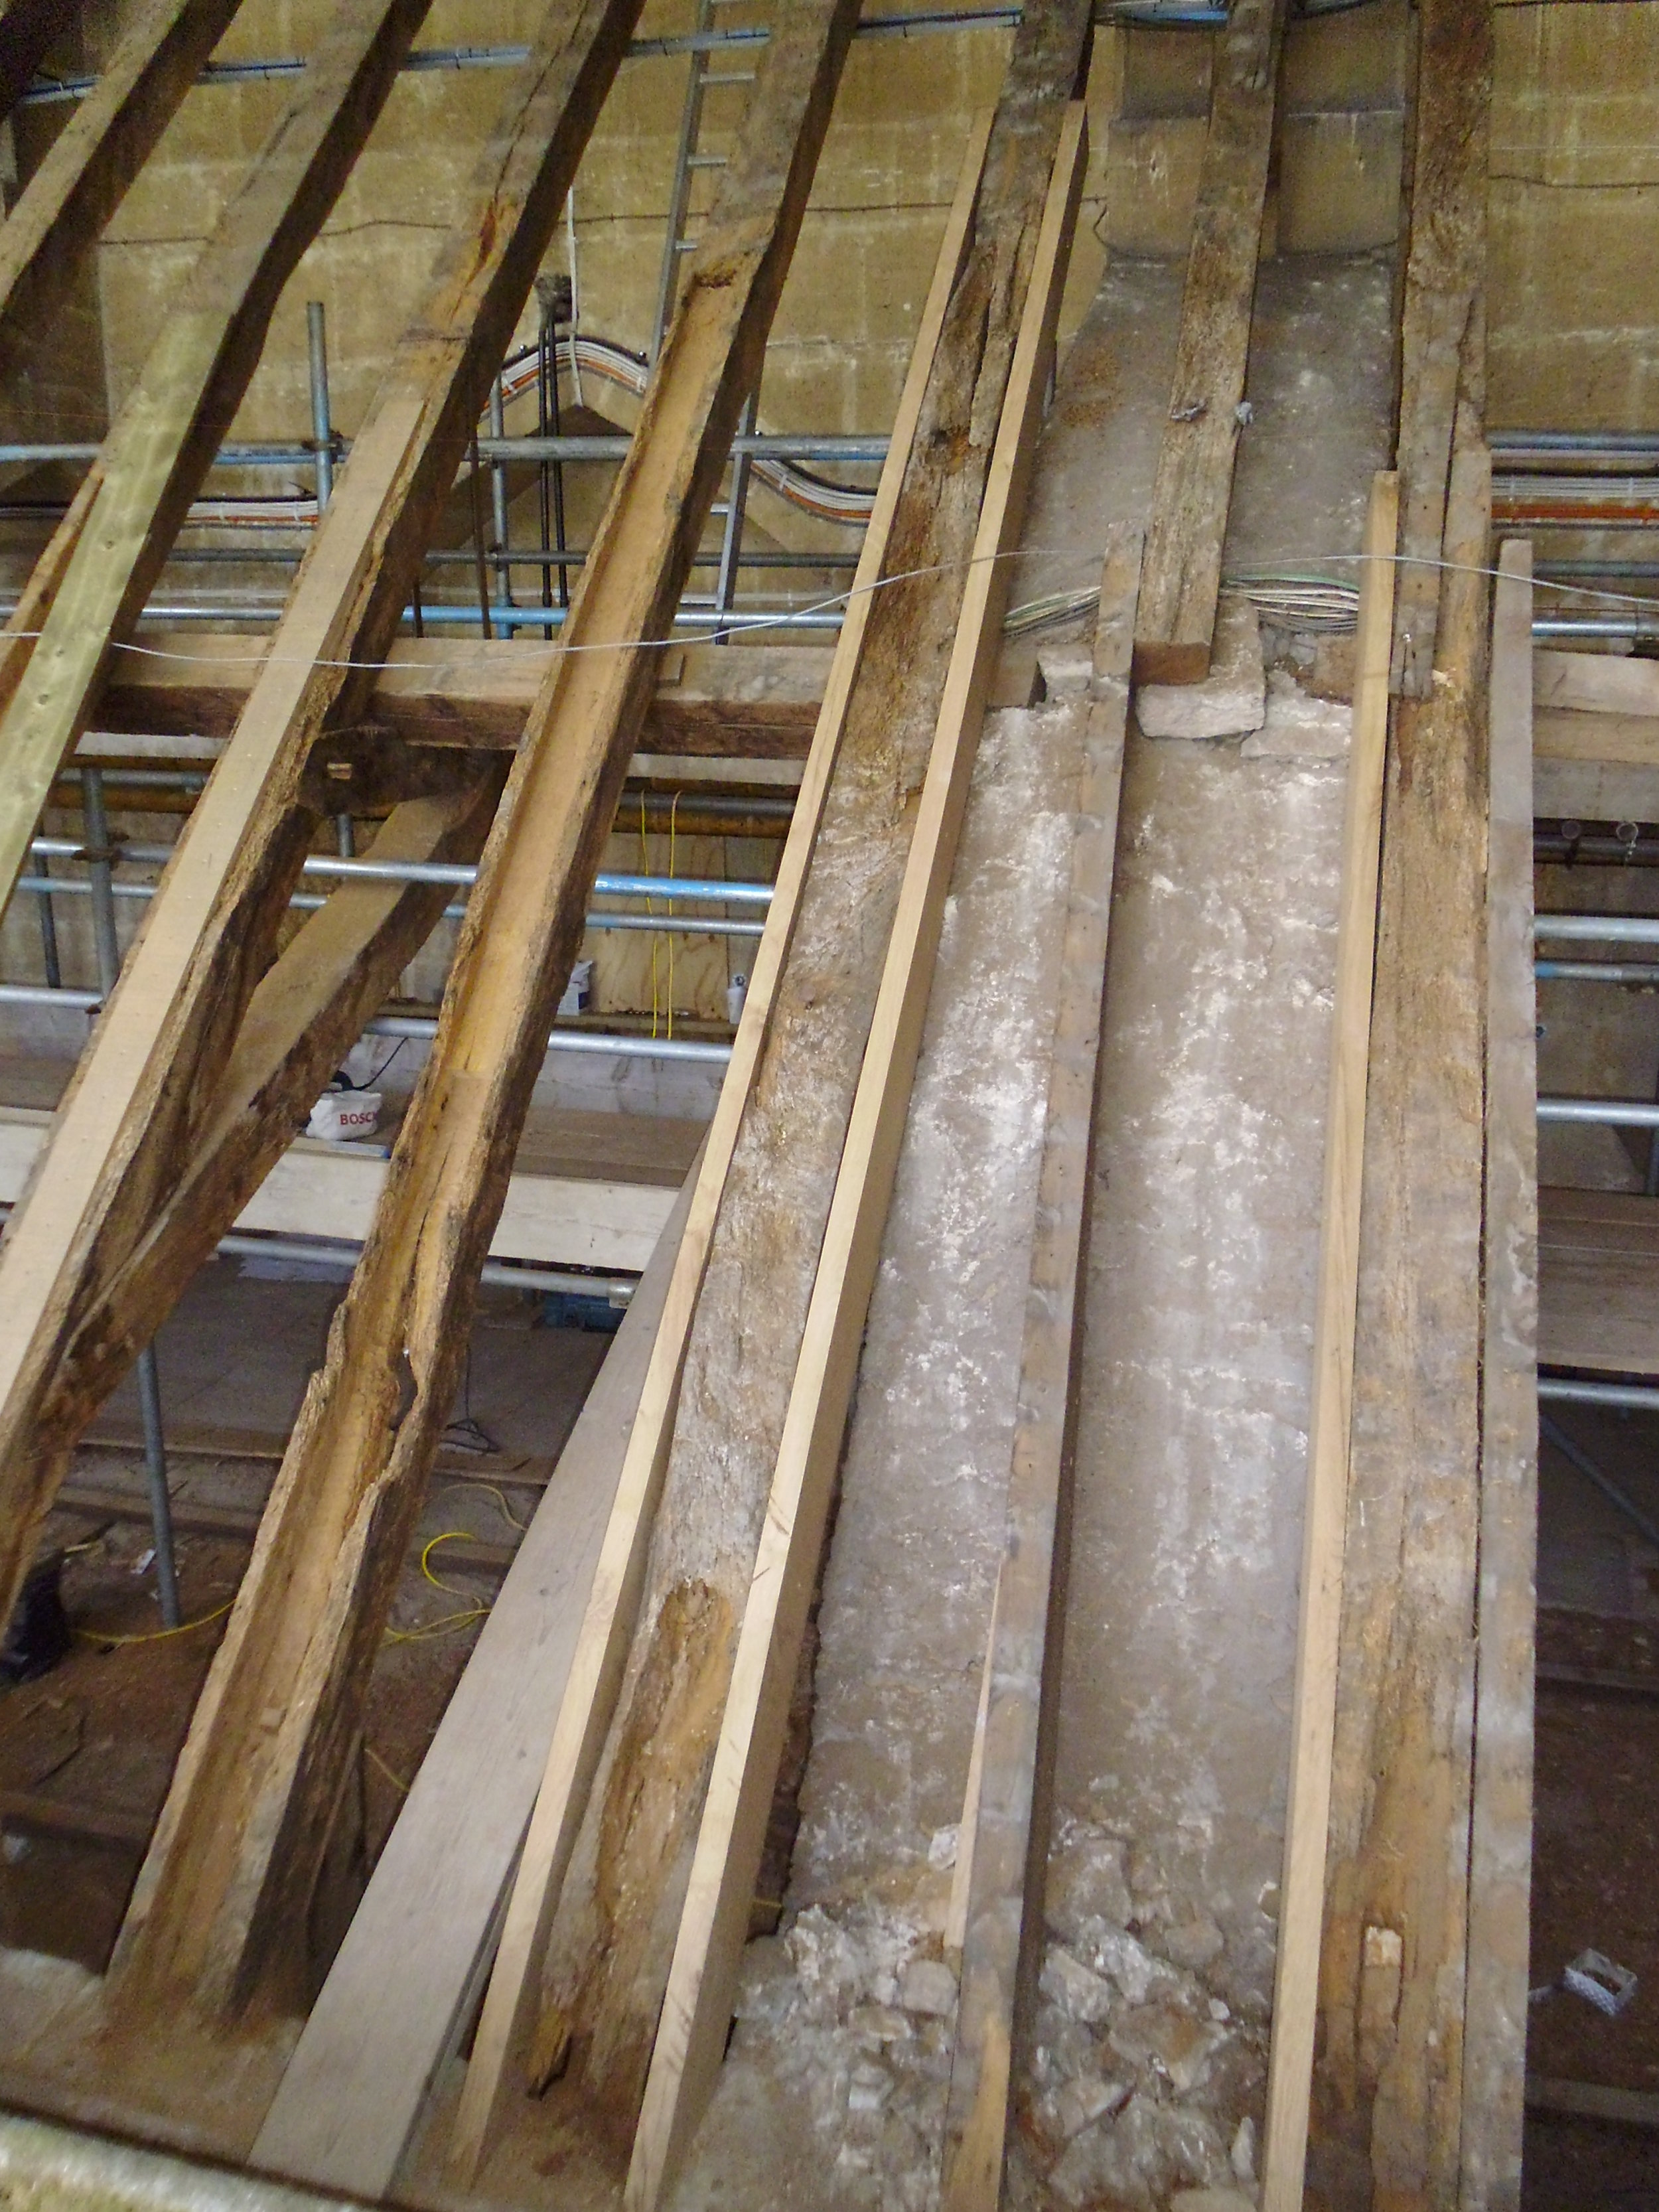 During construction: Repairs being carried out to timber structure